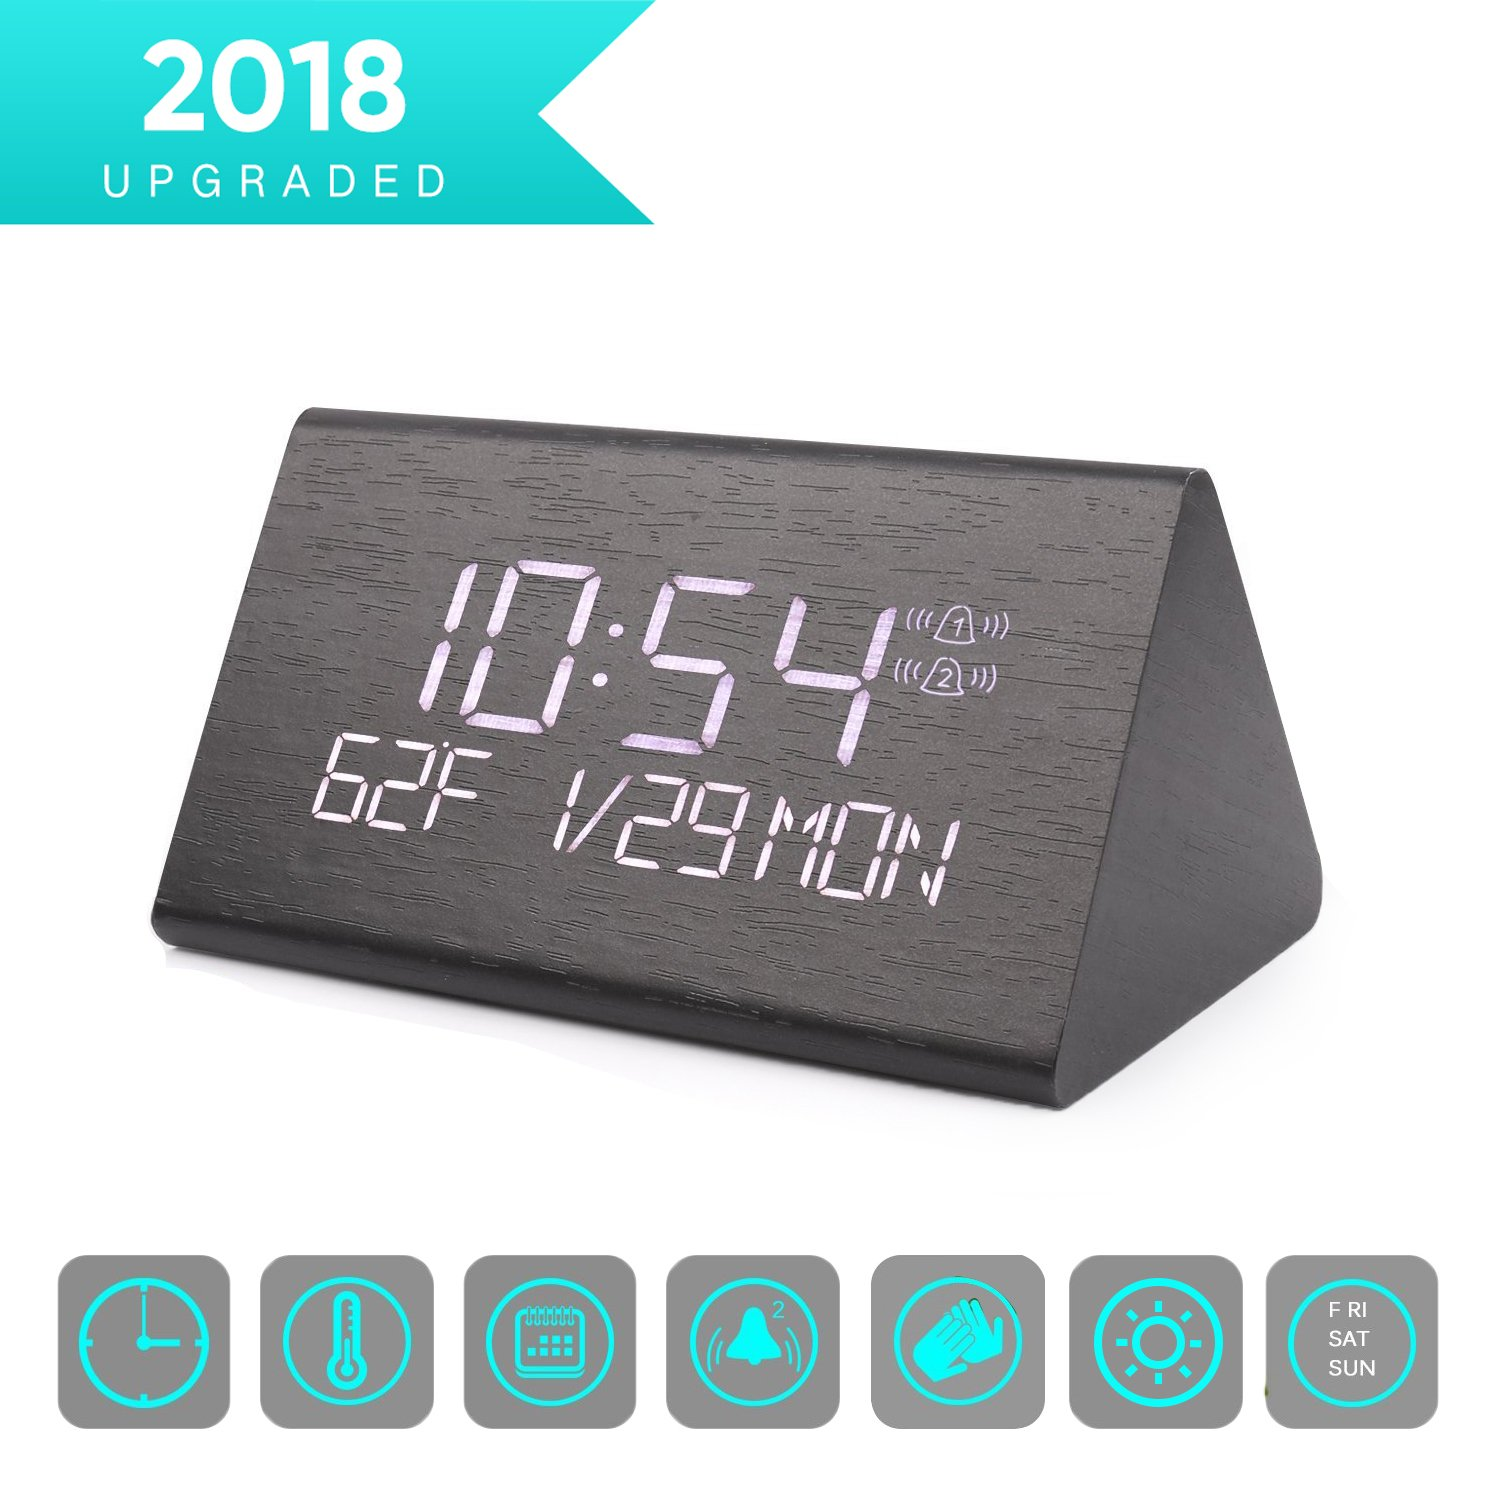 Warmhoming Wooden Digital Alarm Clock with 7 Levels Adjustable Brightness, Voice Command Electric LED Bedside Travel Triangle Alarm Clock, Display Time Date Week Temperature for Bedroom Office Home by Warmhoming